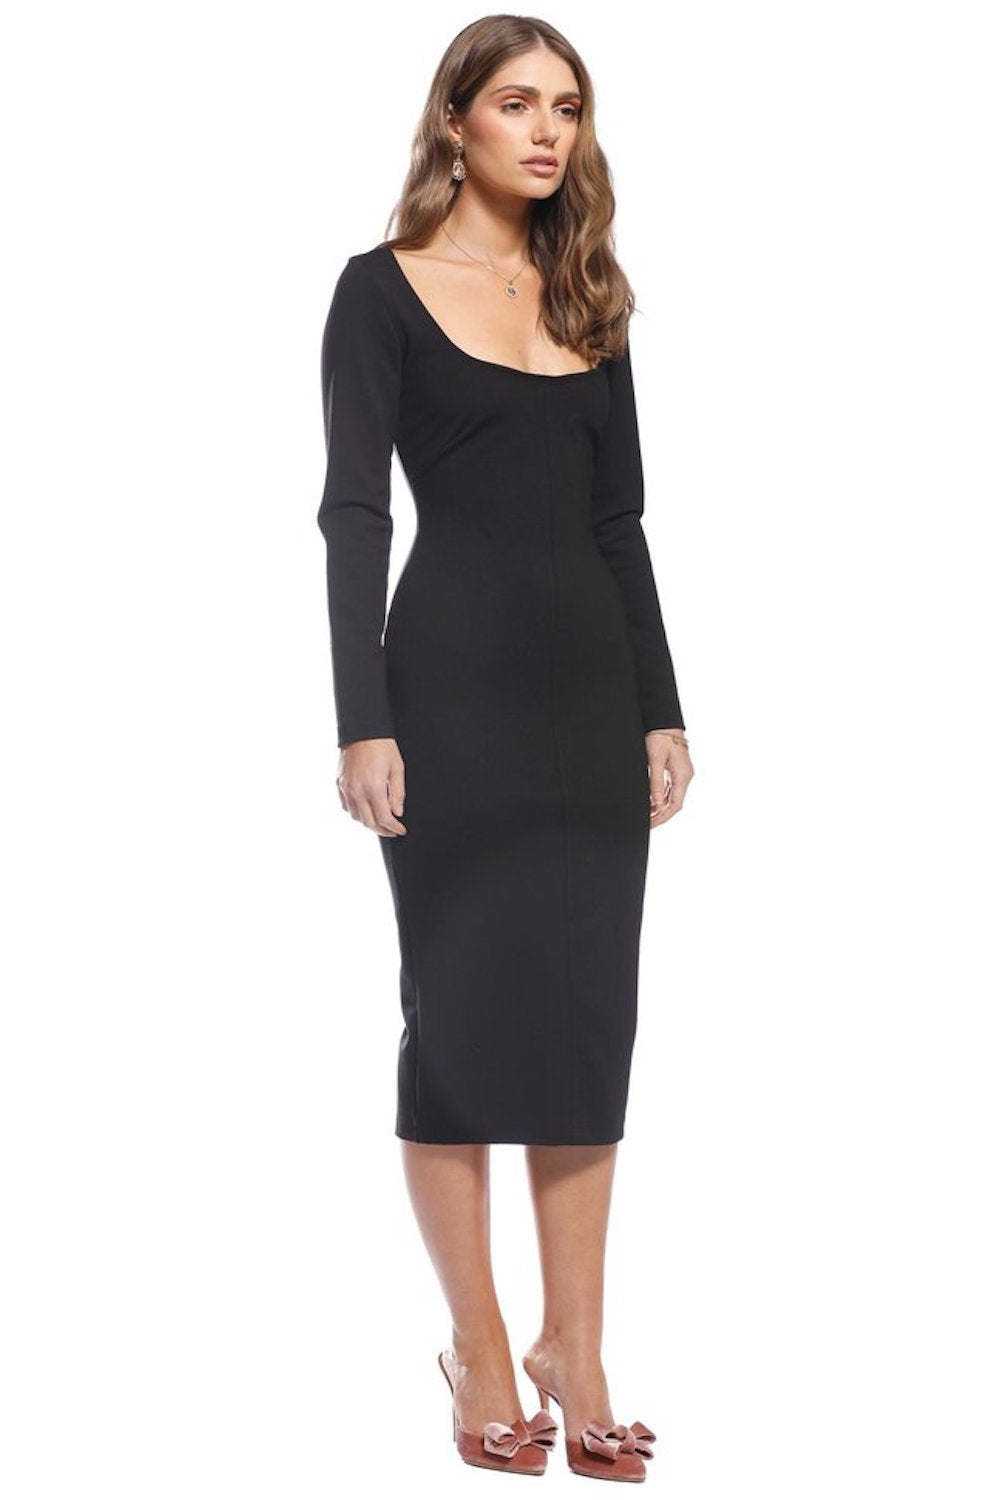 Pasduchas Destiny Midi Dress in Black